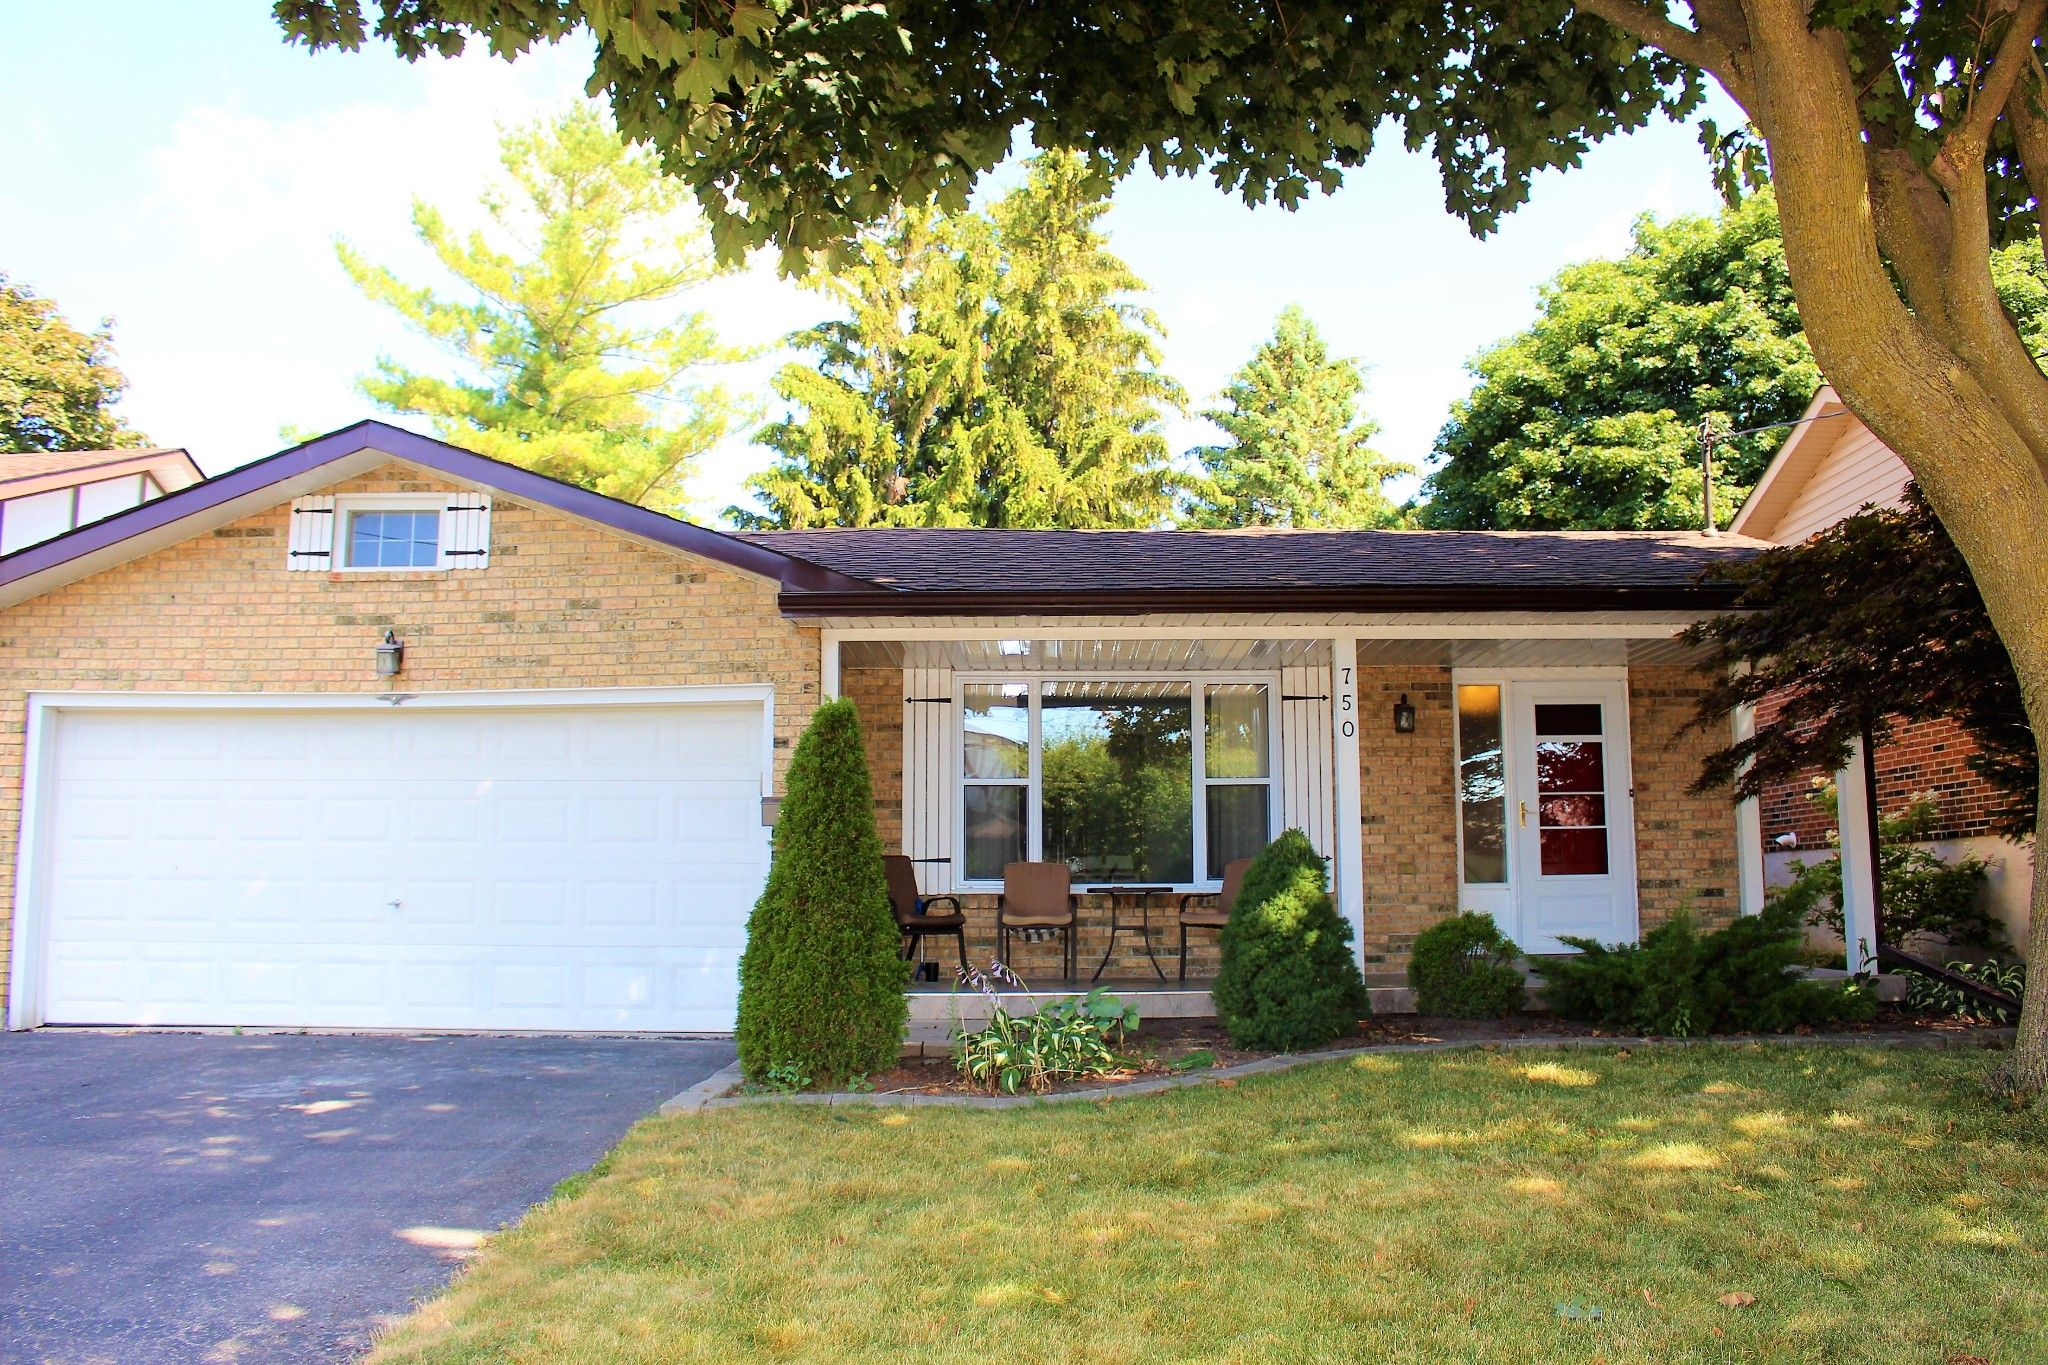 Main Photo: 750 Northwood Drive in Cobourg: House for sale : MLS®# 274775